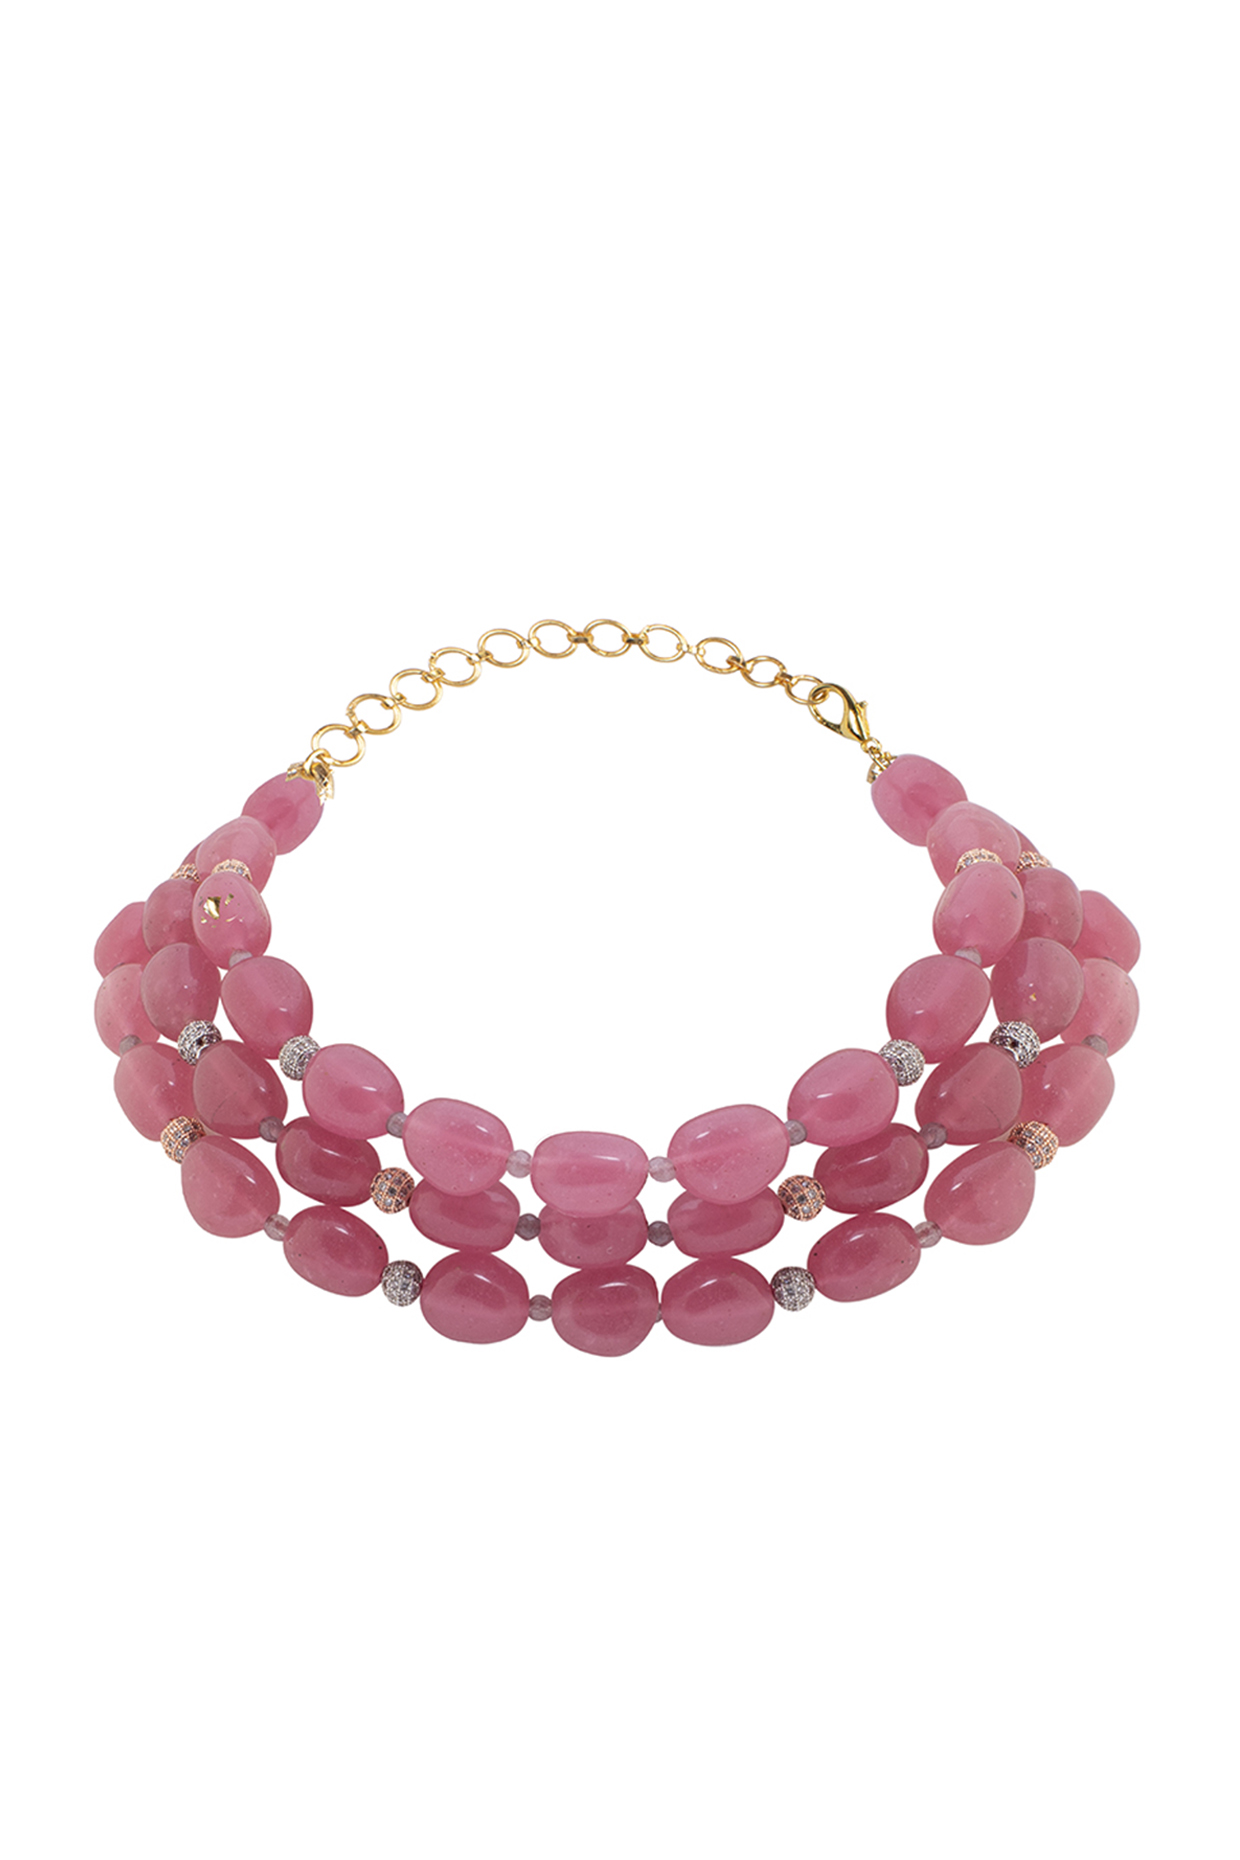 Gold Finish Pink Quartz Beaded Necklace by Joules By Radhika